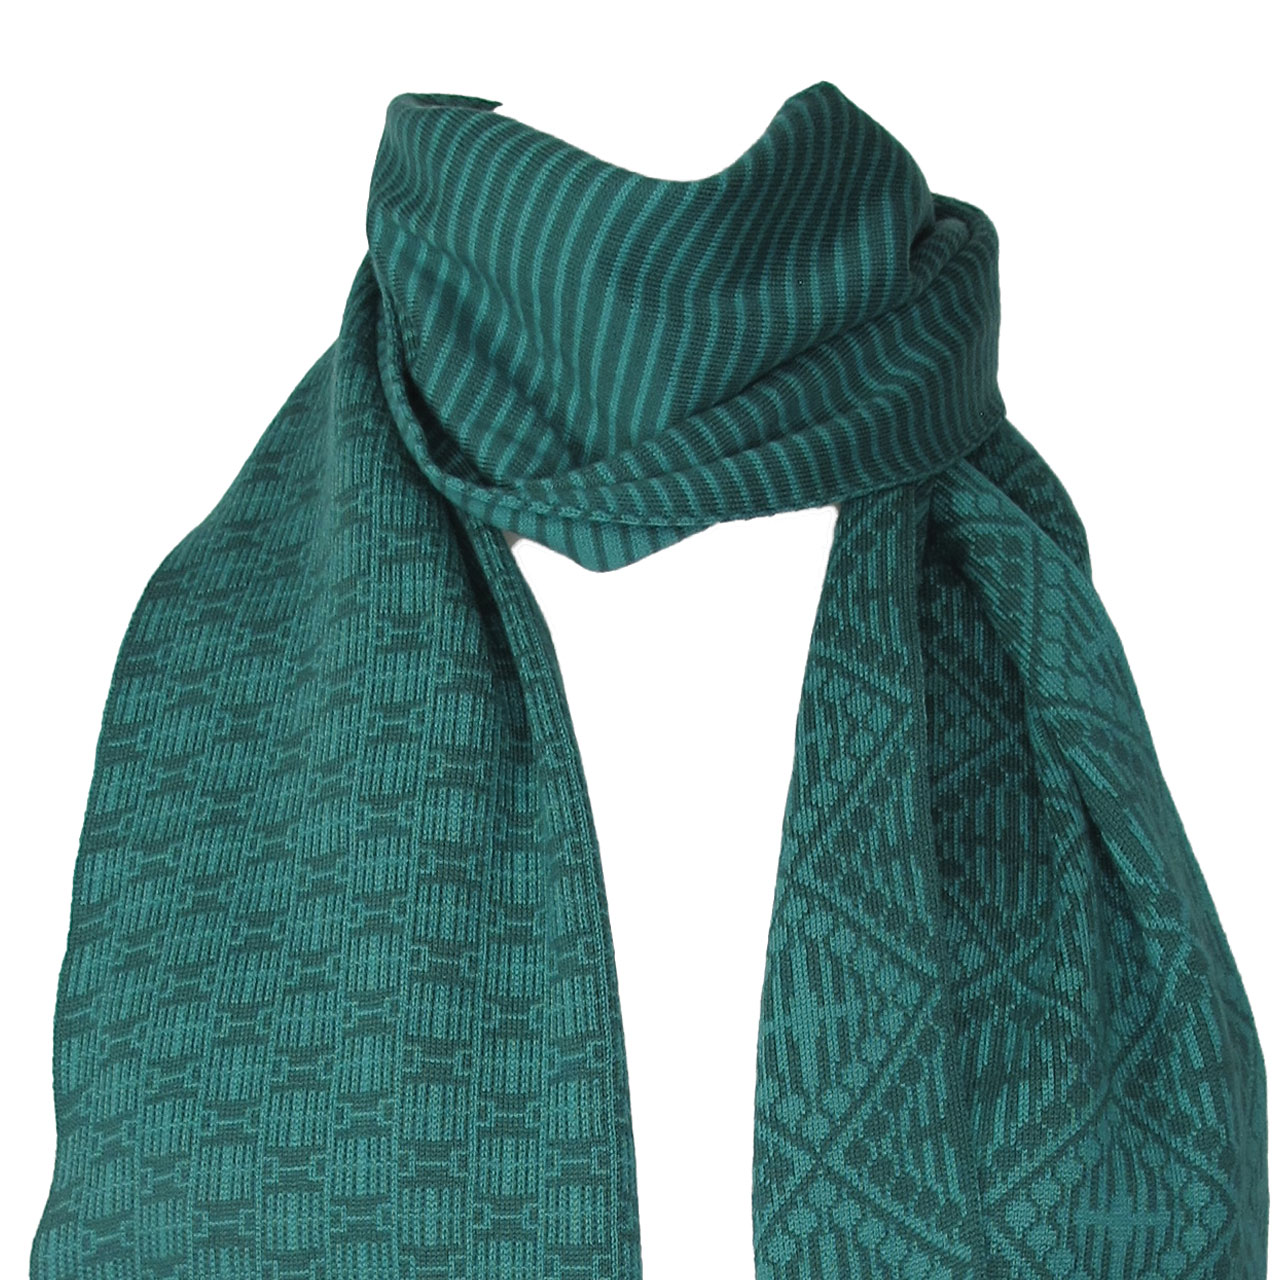 Berlindesign Schal This City Rocks mix Muster mint